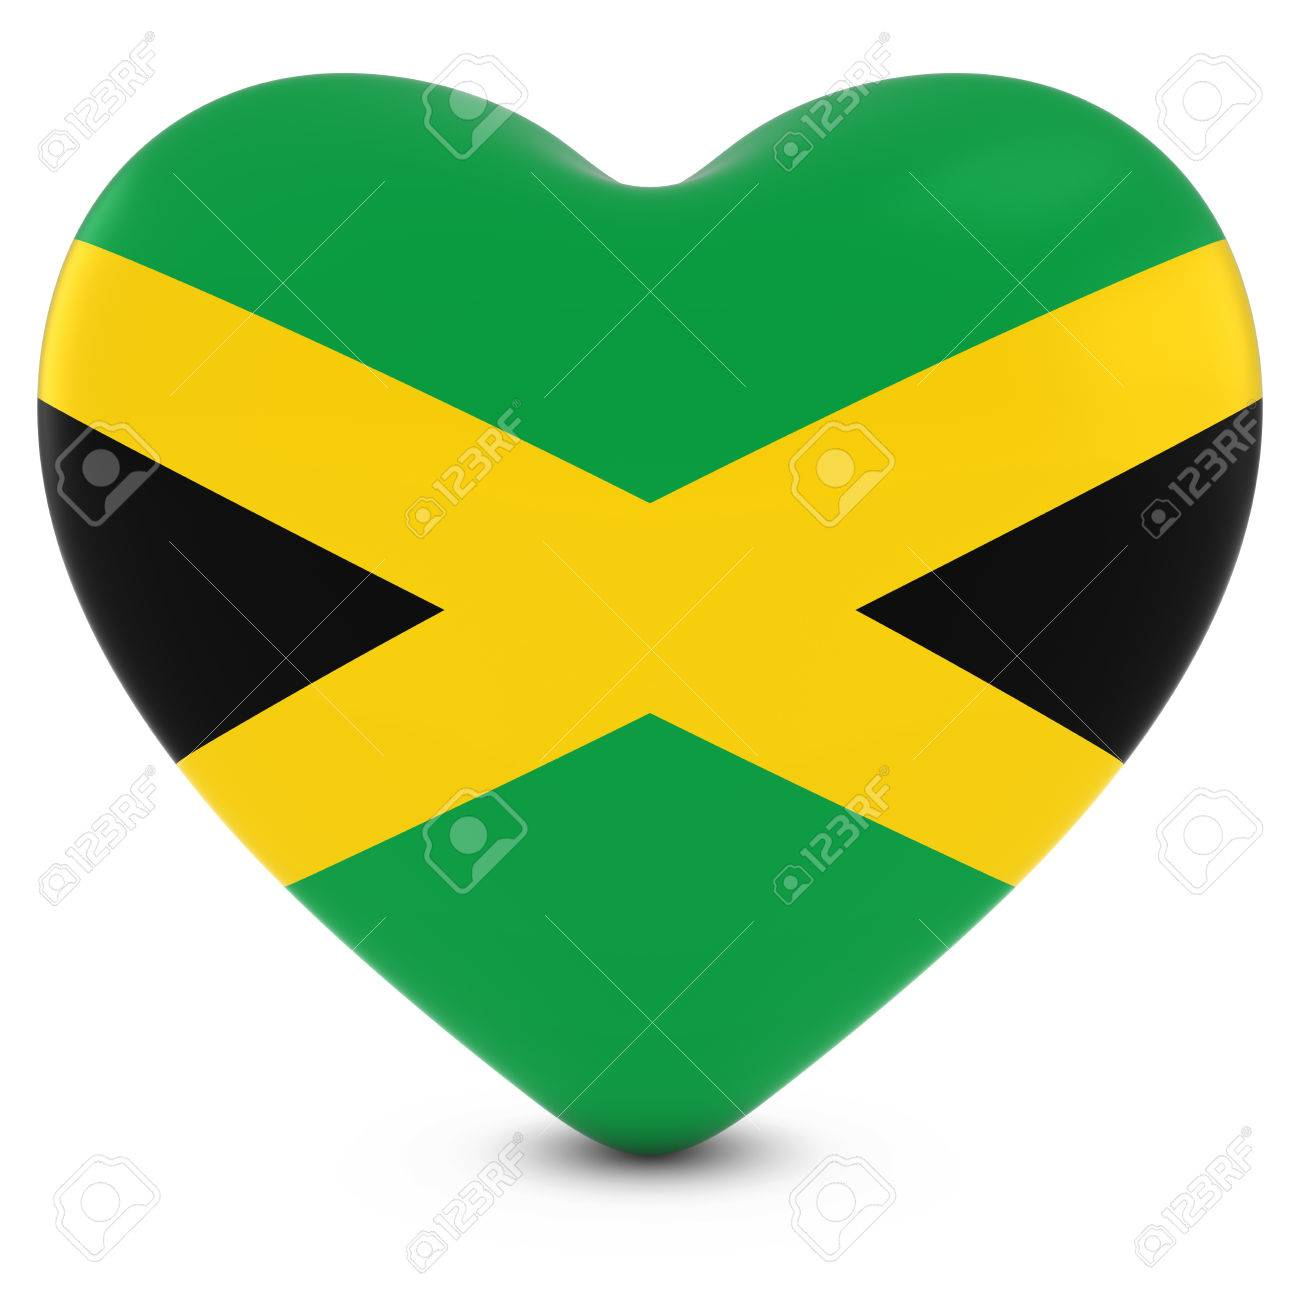 Love jamaica concept image heart textured with jamaican flag stock photo 55630210